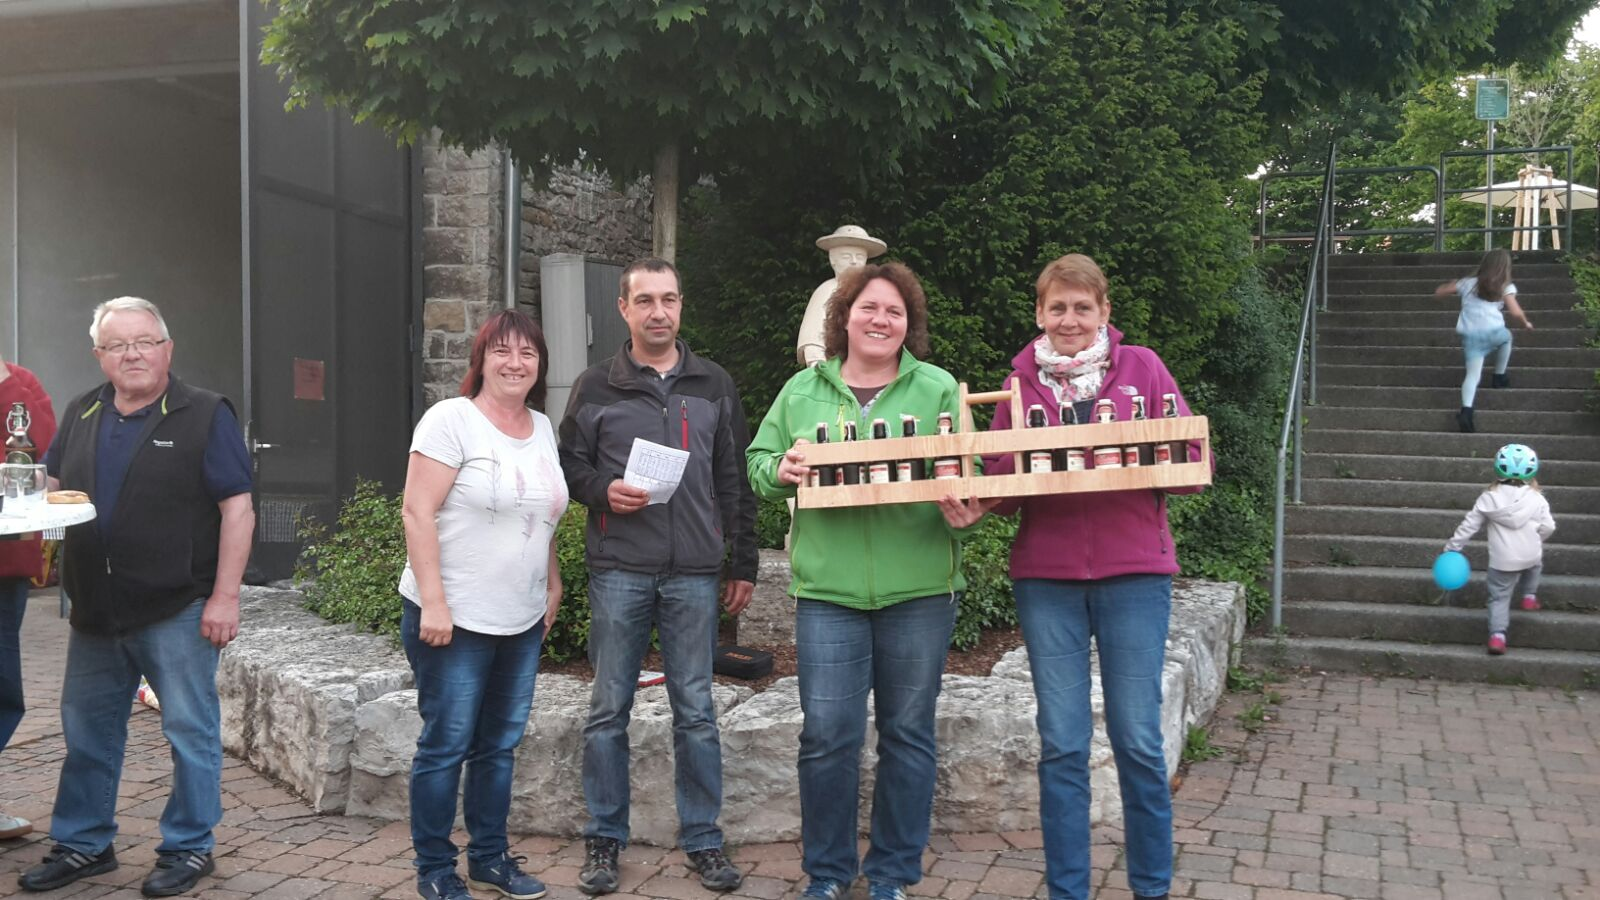 2. Platz an das Damenteam